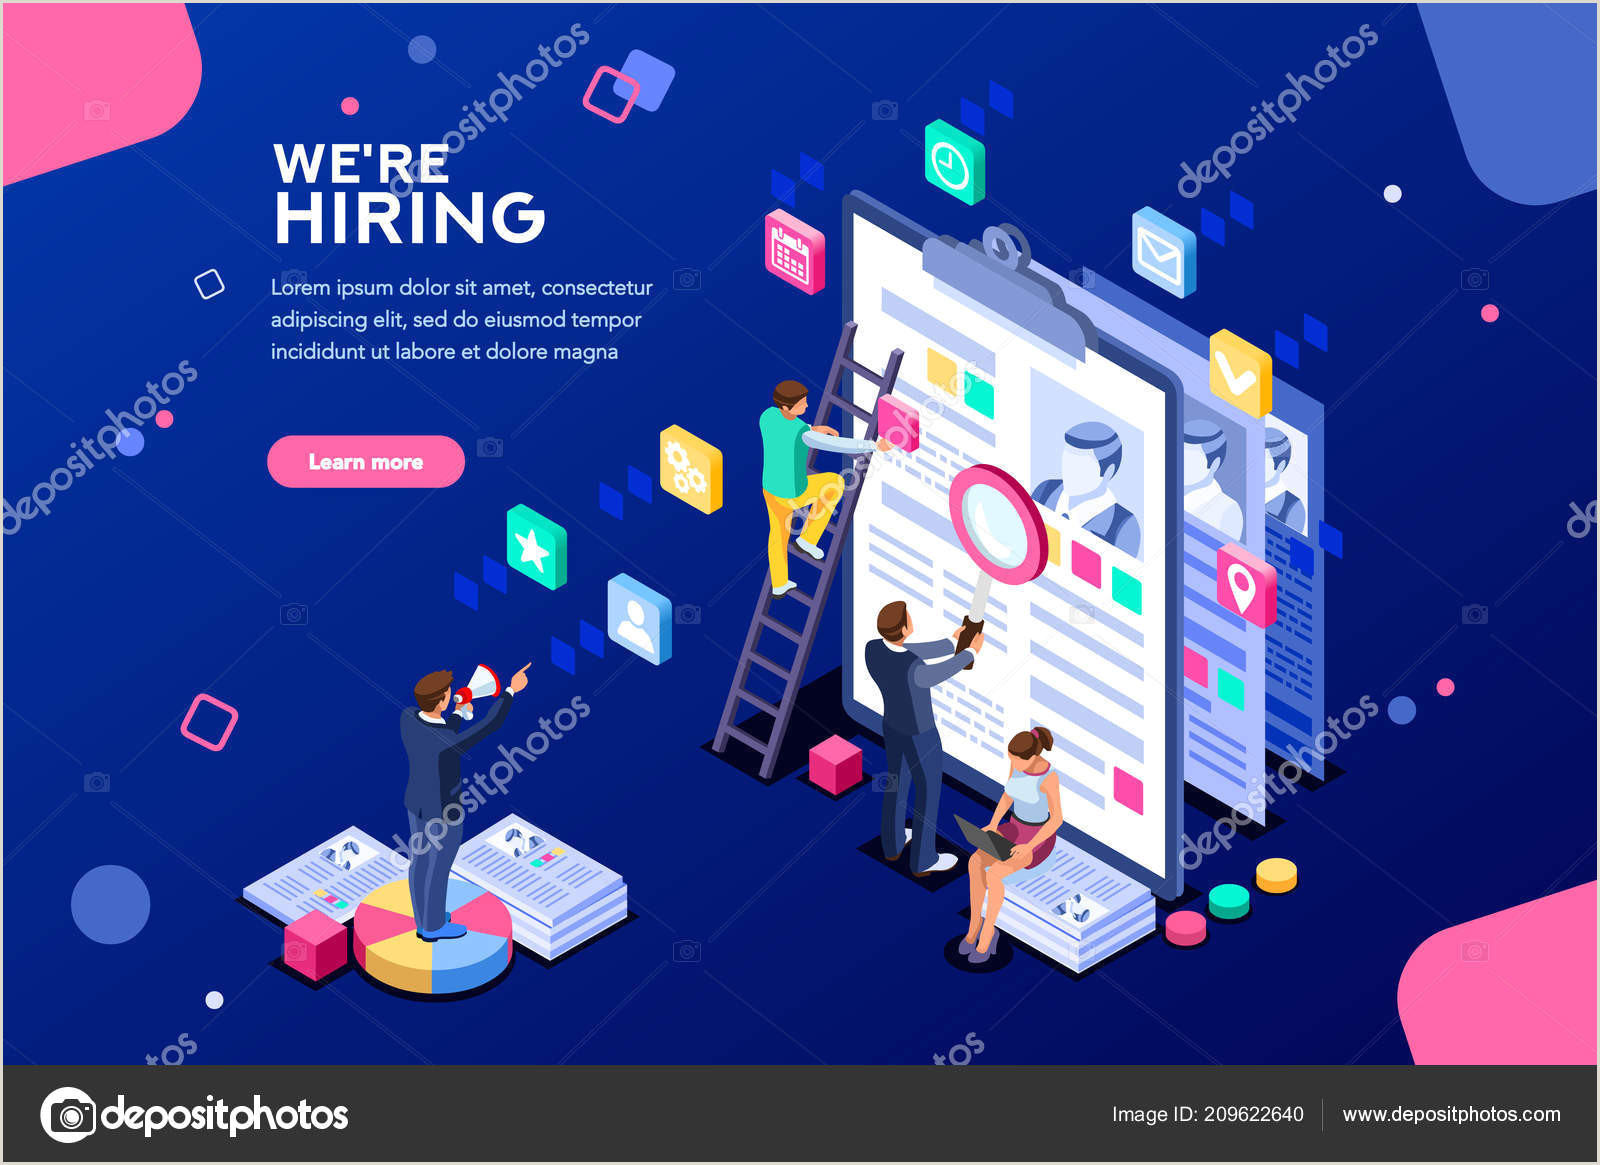 Career Fair Banners Job Presentation Fair Banner Page Choose Career Or Interview A Candidate Job Agency Human Resources Creative Find Experience Work Concept With